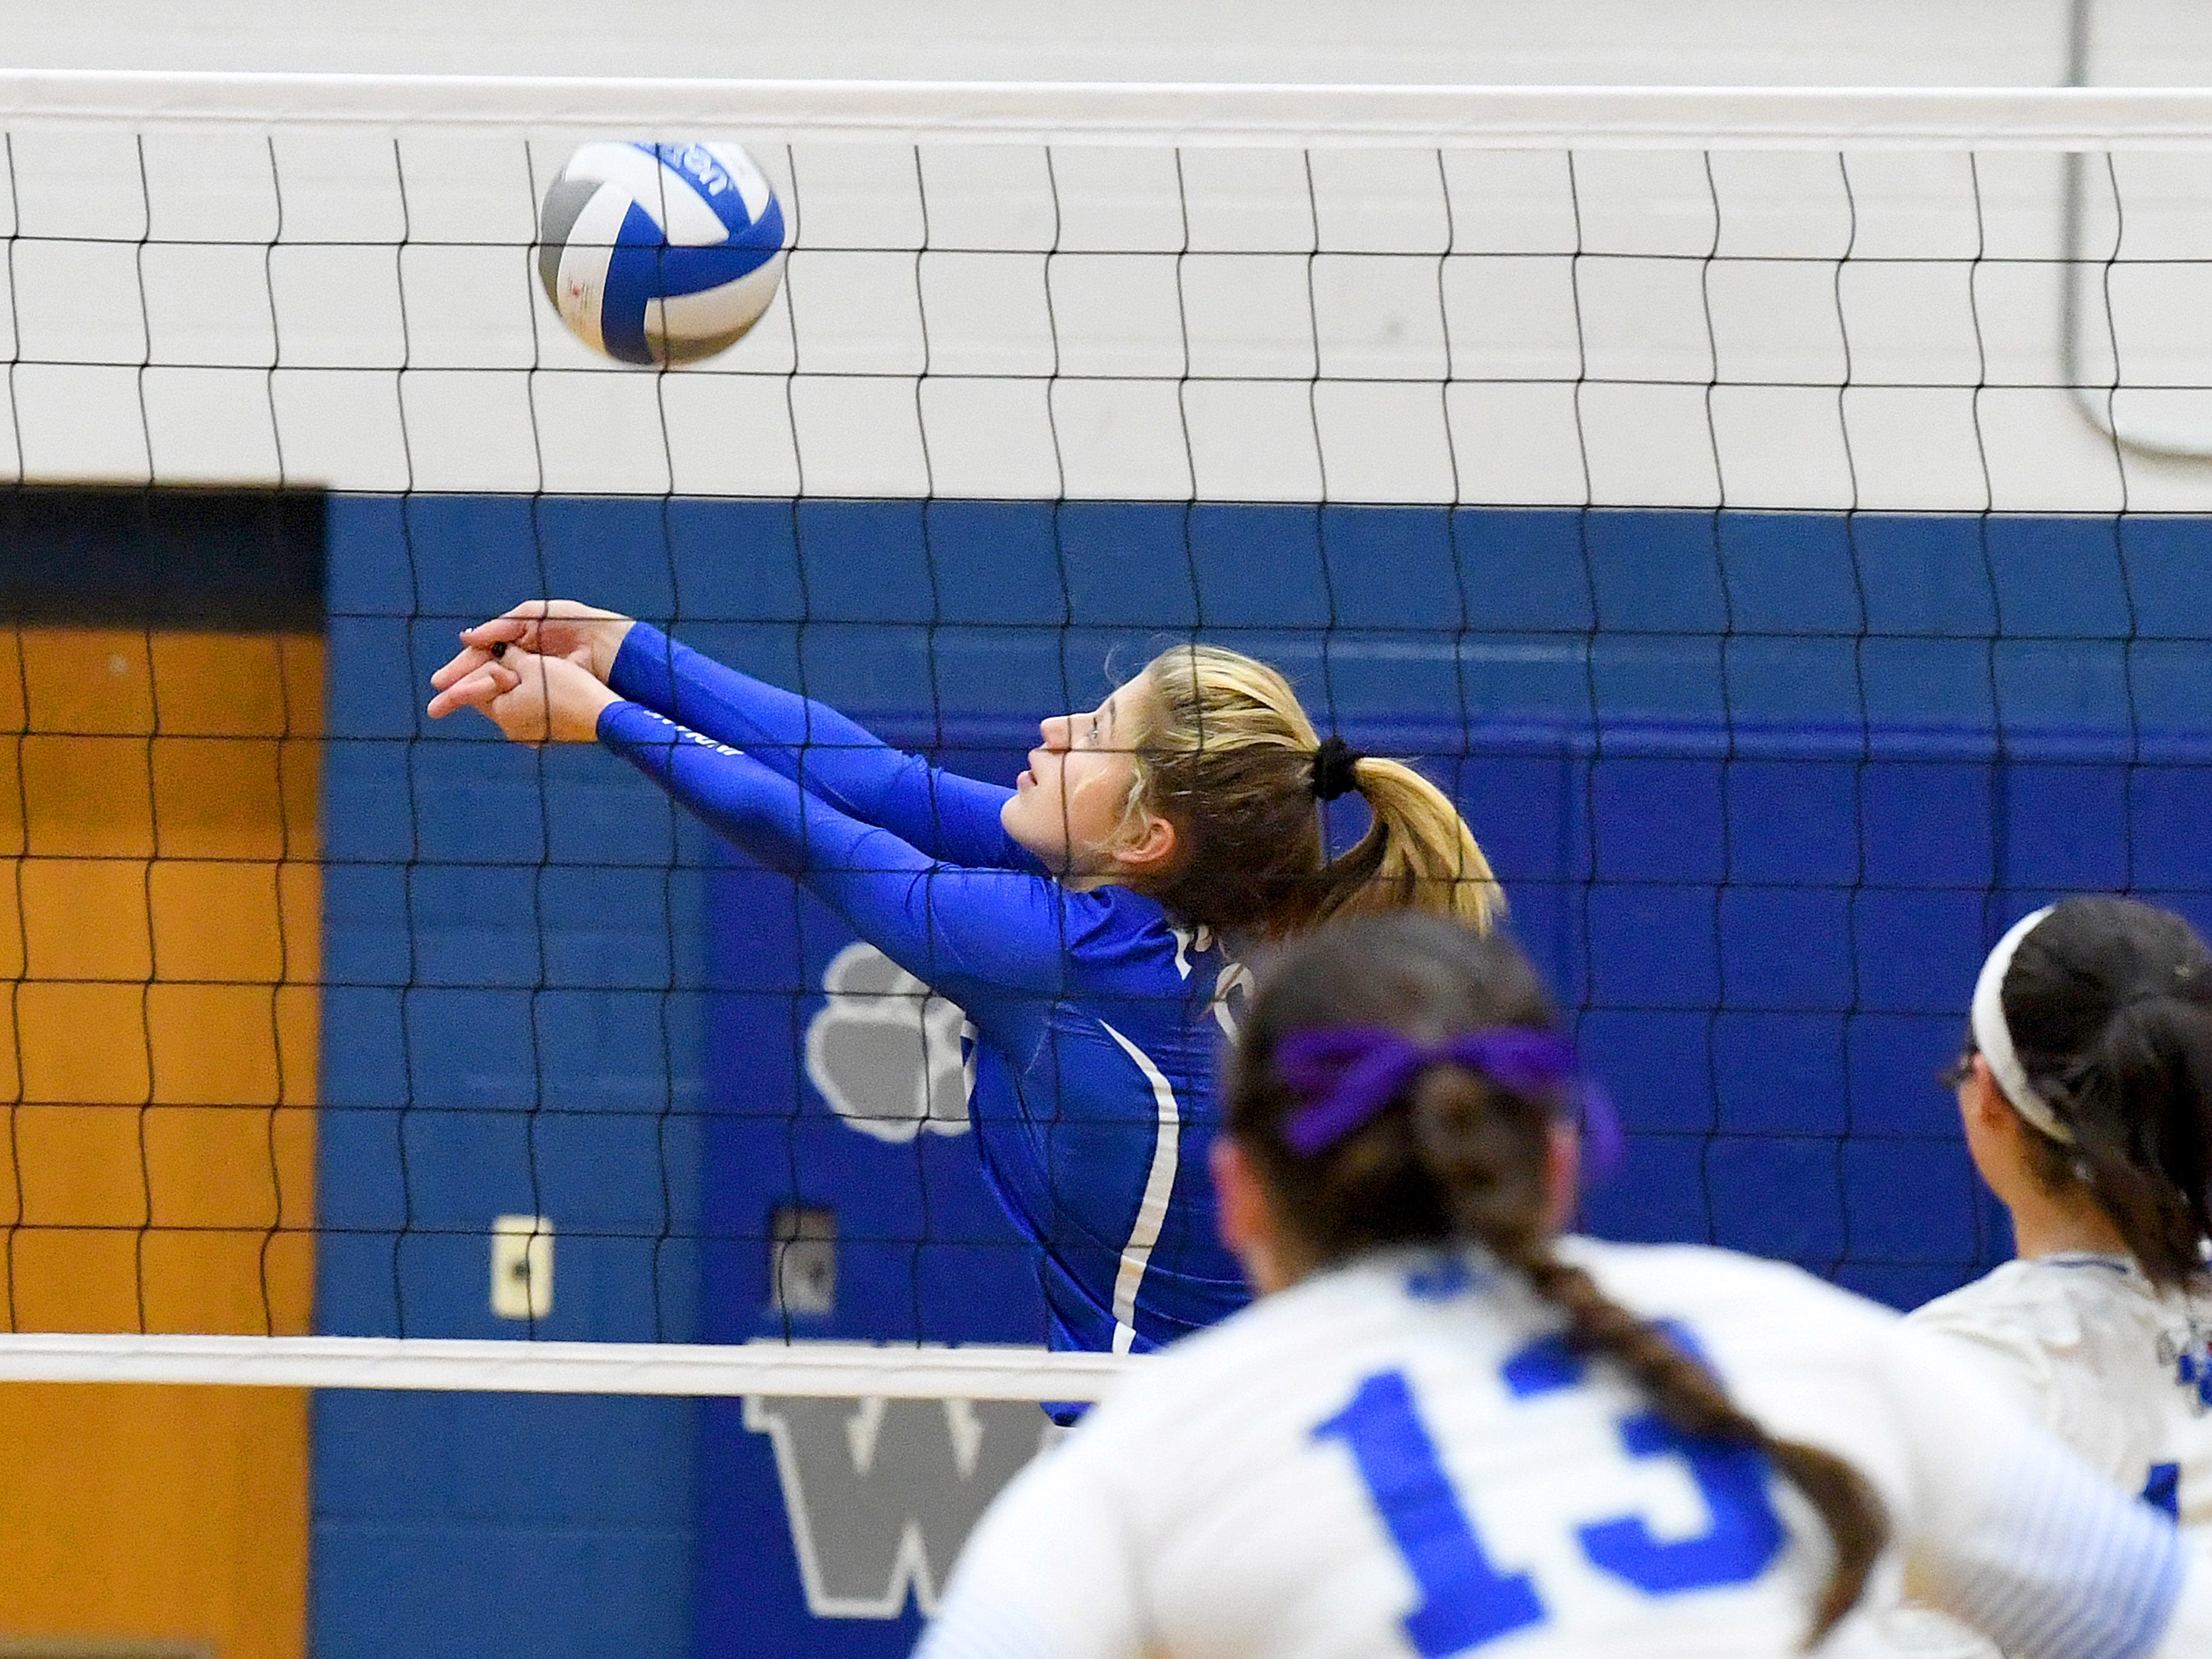 Fort Defiance's Jessi Hull bumps the ball during a Region 3C semifinal match played in Lexington on Monday, Nov. 5, 2018.